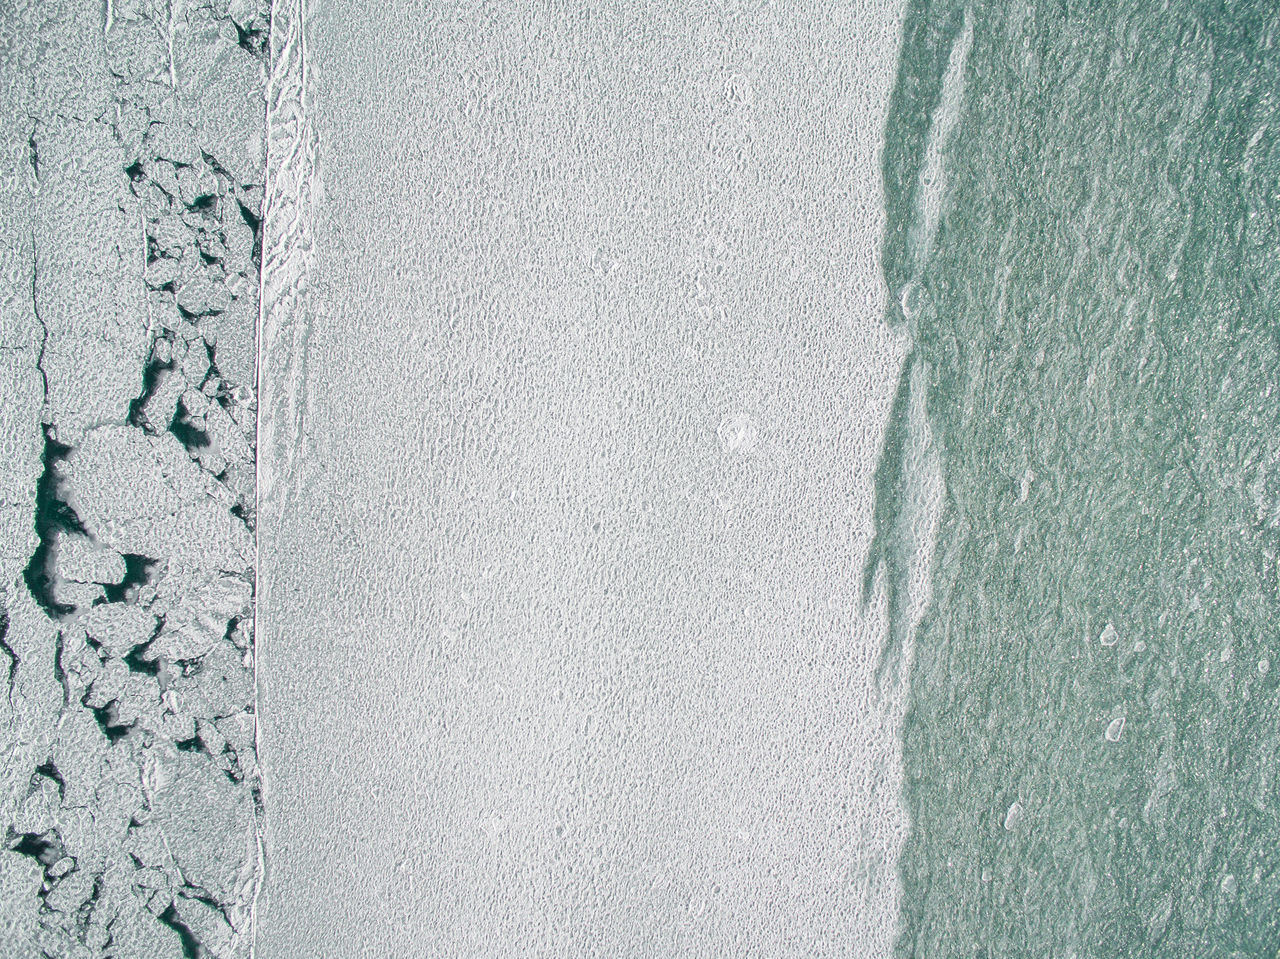 backgrounds close-up day Frozen lake full frame Ice lake no people outdoors pattern Textured top view Fresh on Market 2017